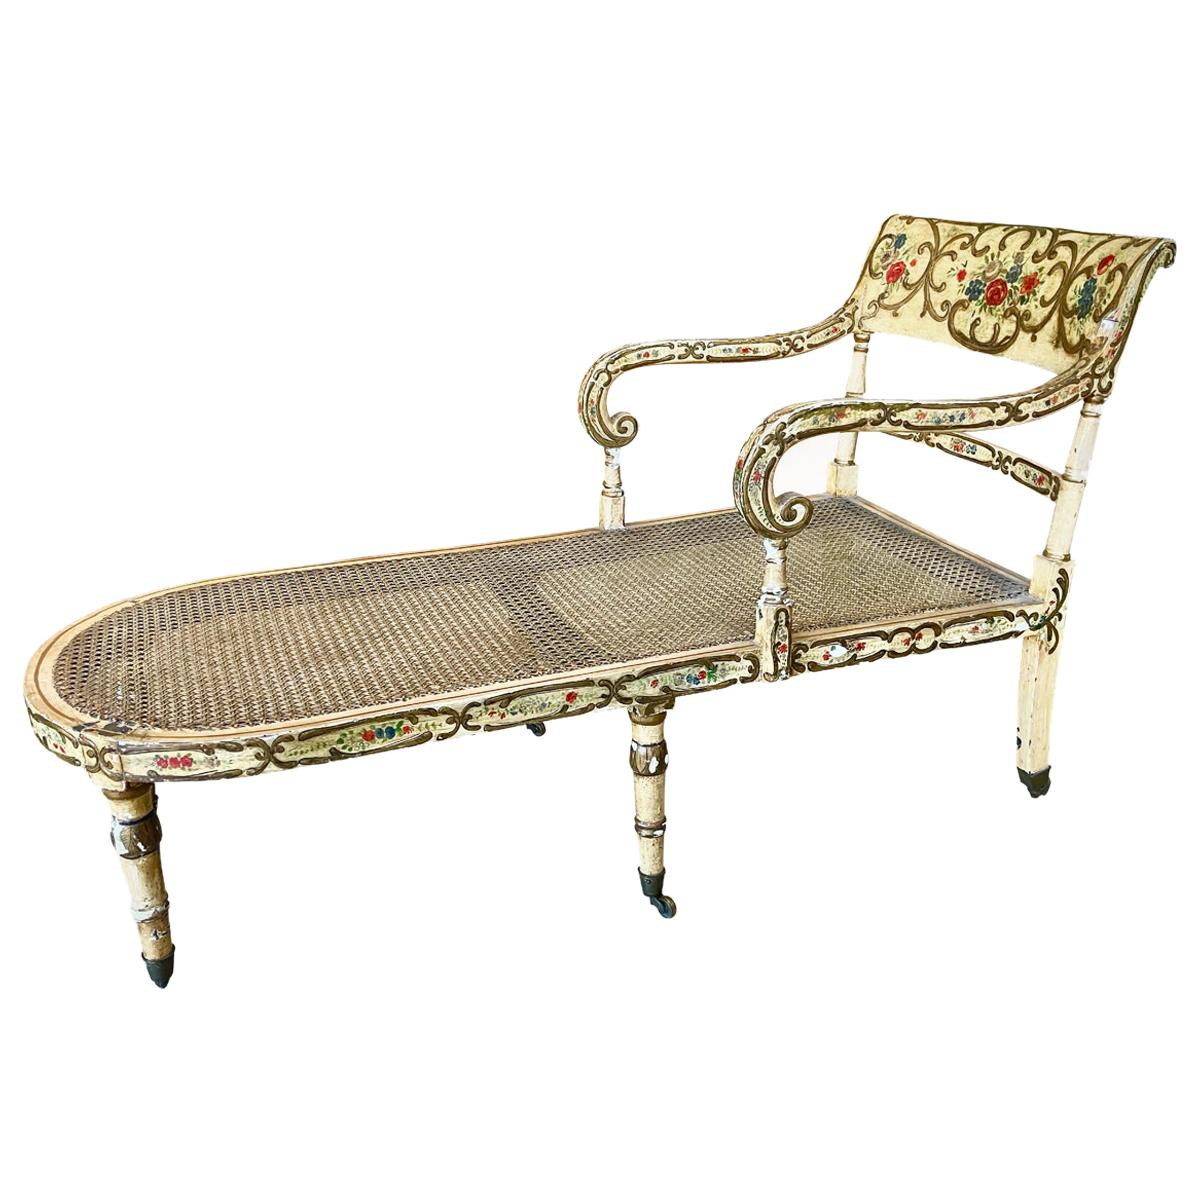 Recamier Chaise Lounge, circa 1830, Polychrome and Caned